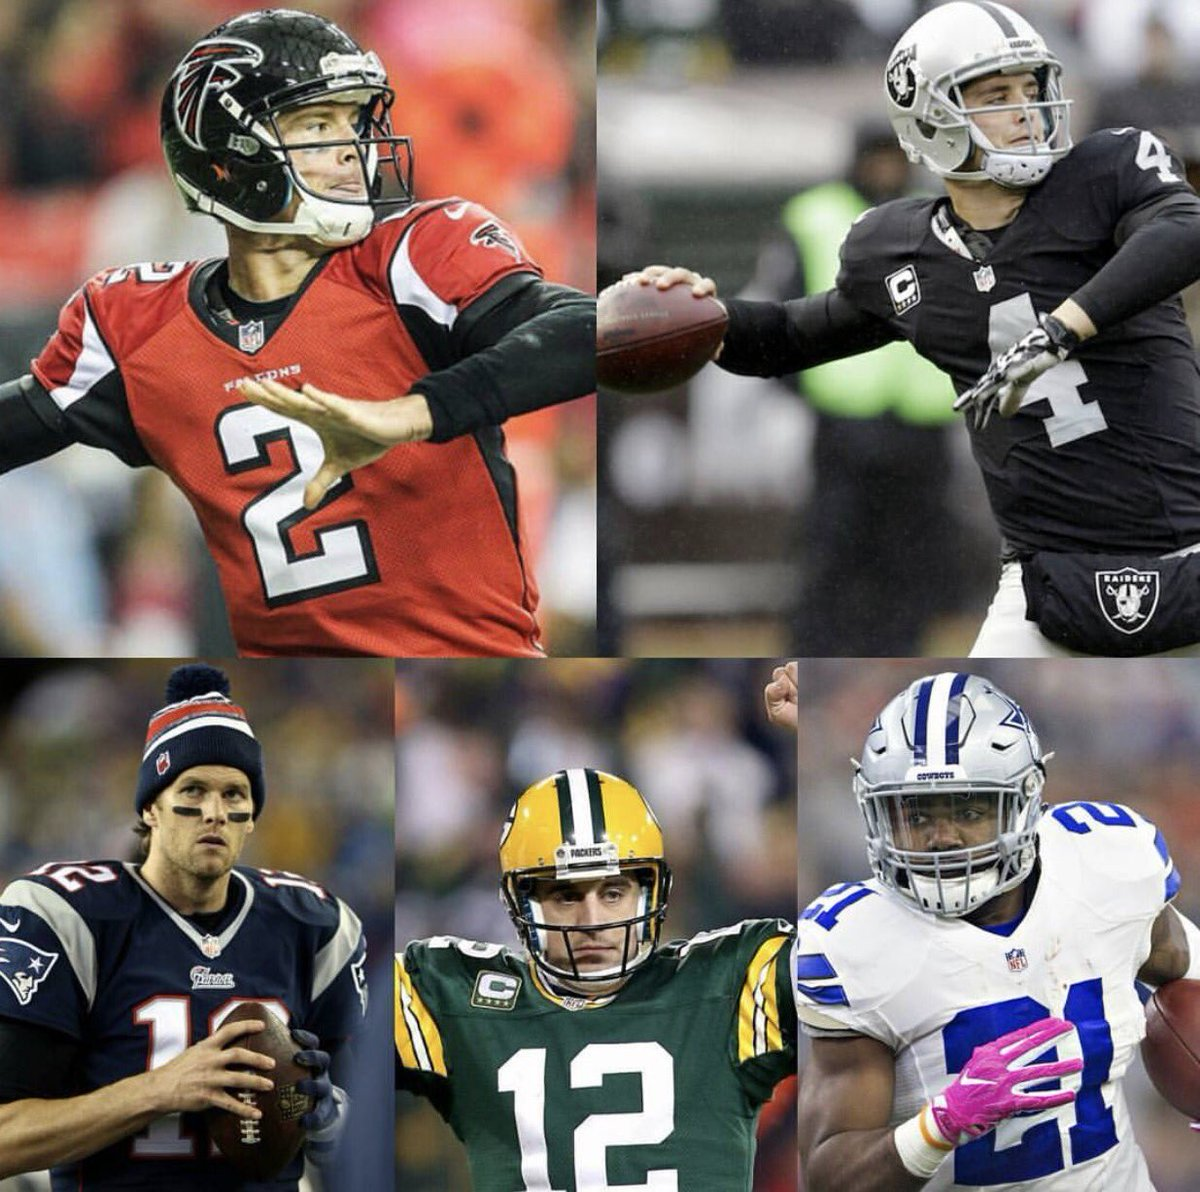 Who is your pick for NFL MVP?! #NaitchDebate https://t.co/5WcFtVYPm4